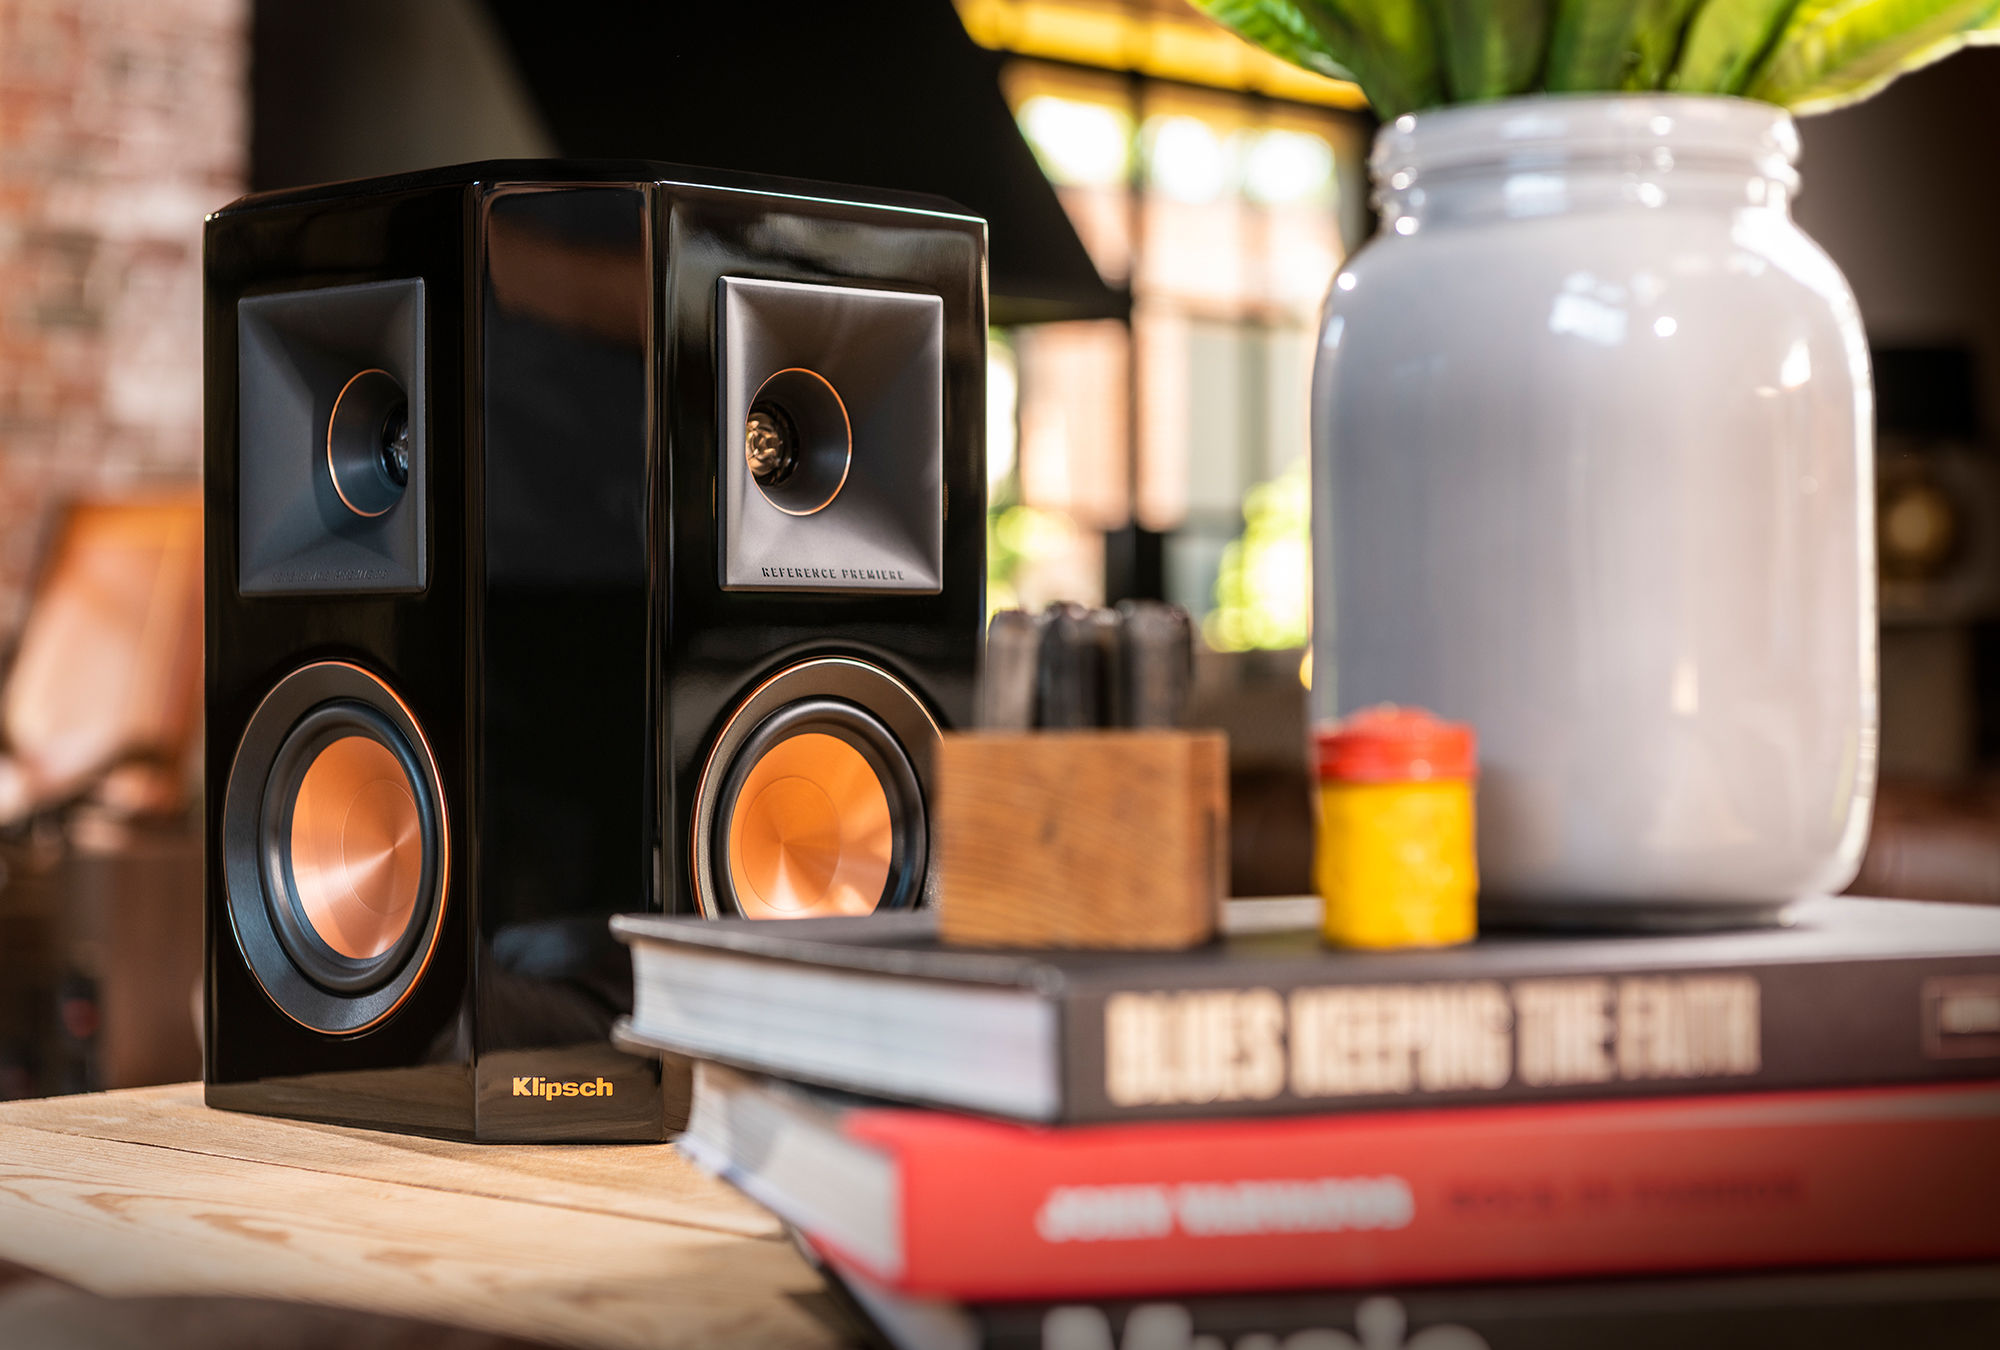 RP-502S surround sound speaker on a wooden tabletop